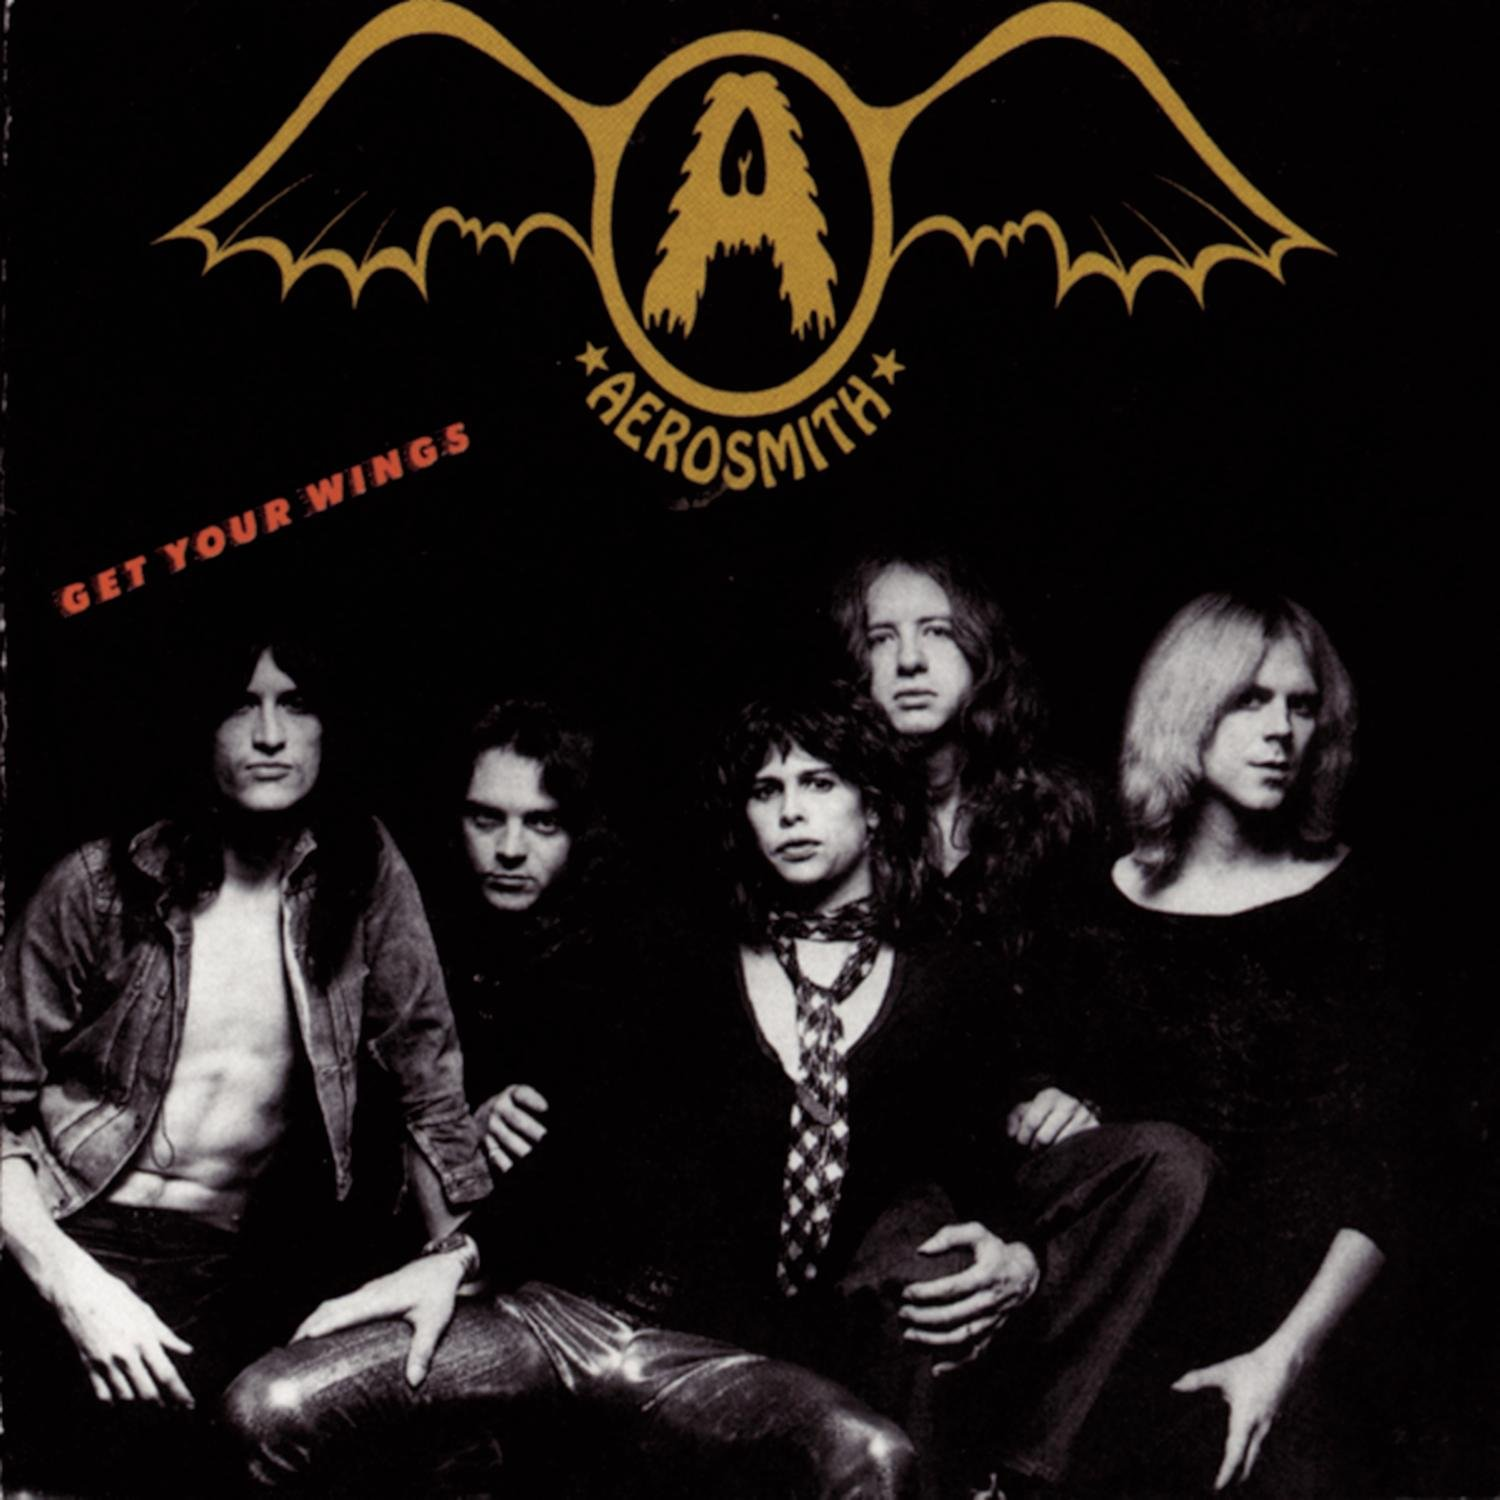 CD : Aerosmith - Get Your Wings (Remastered)